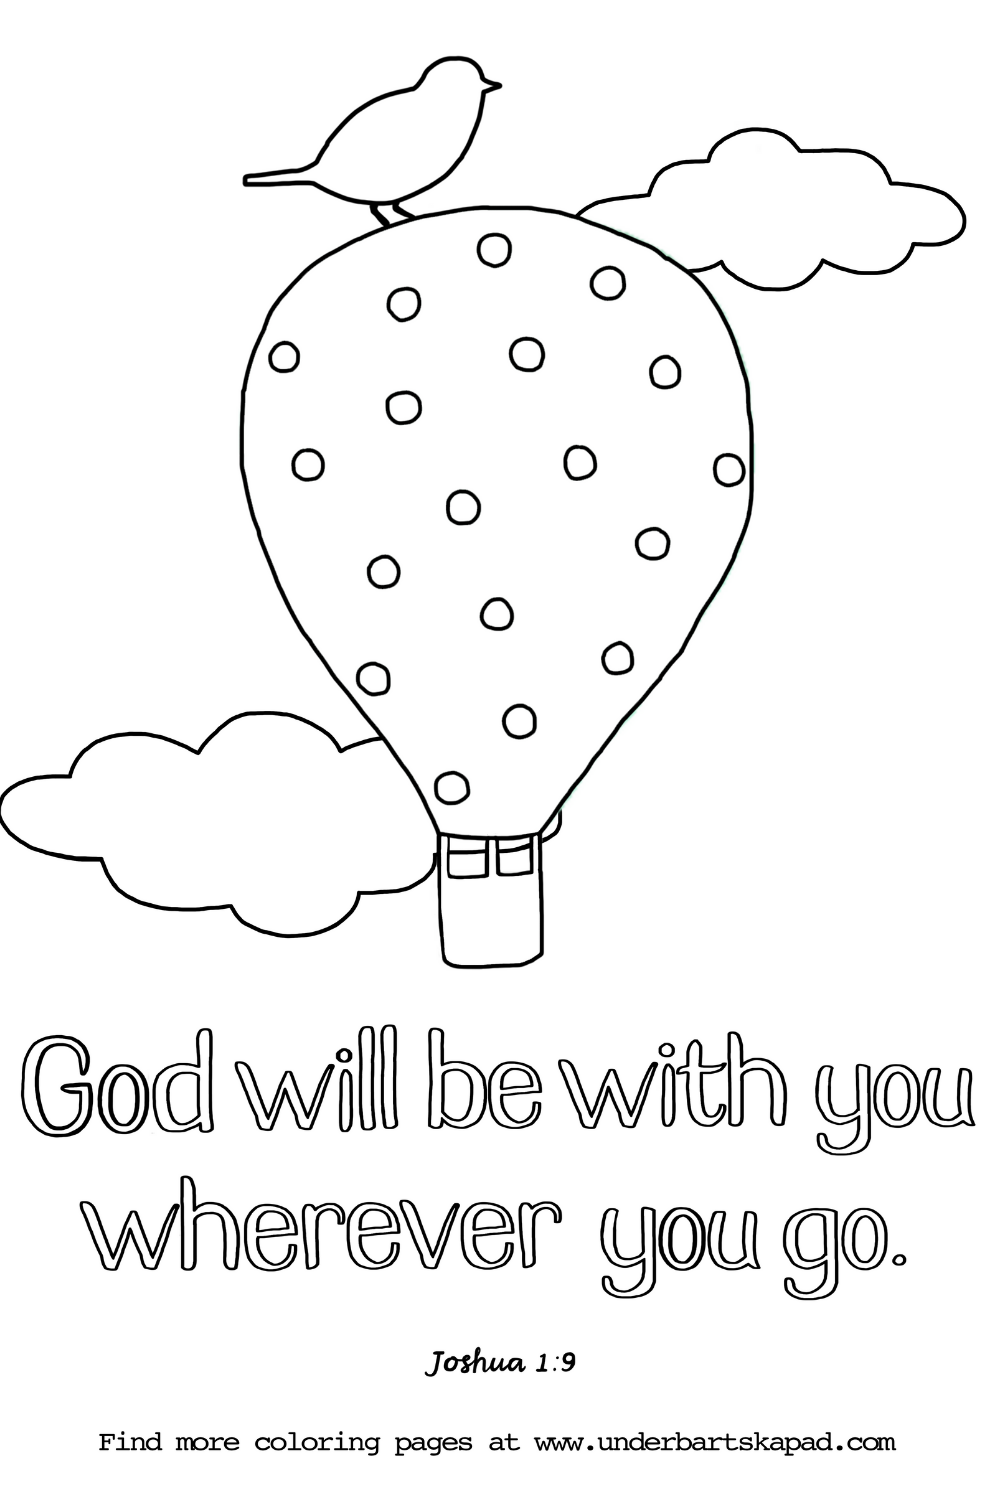 Free Coloring Pages Joshua 1 9 Coloring Pages Printable Coloring Pages Printable Coloring